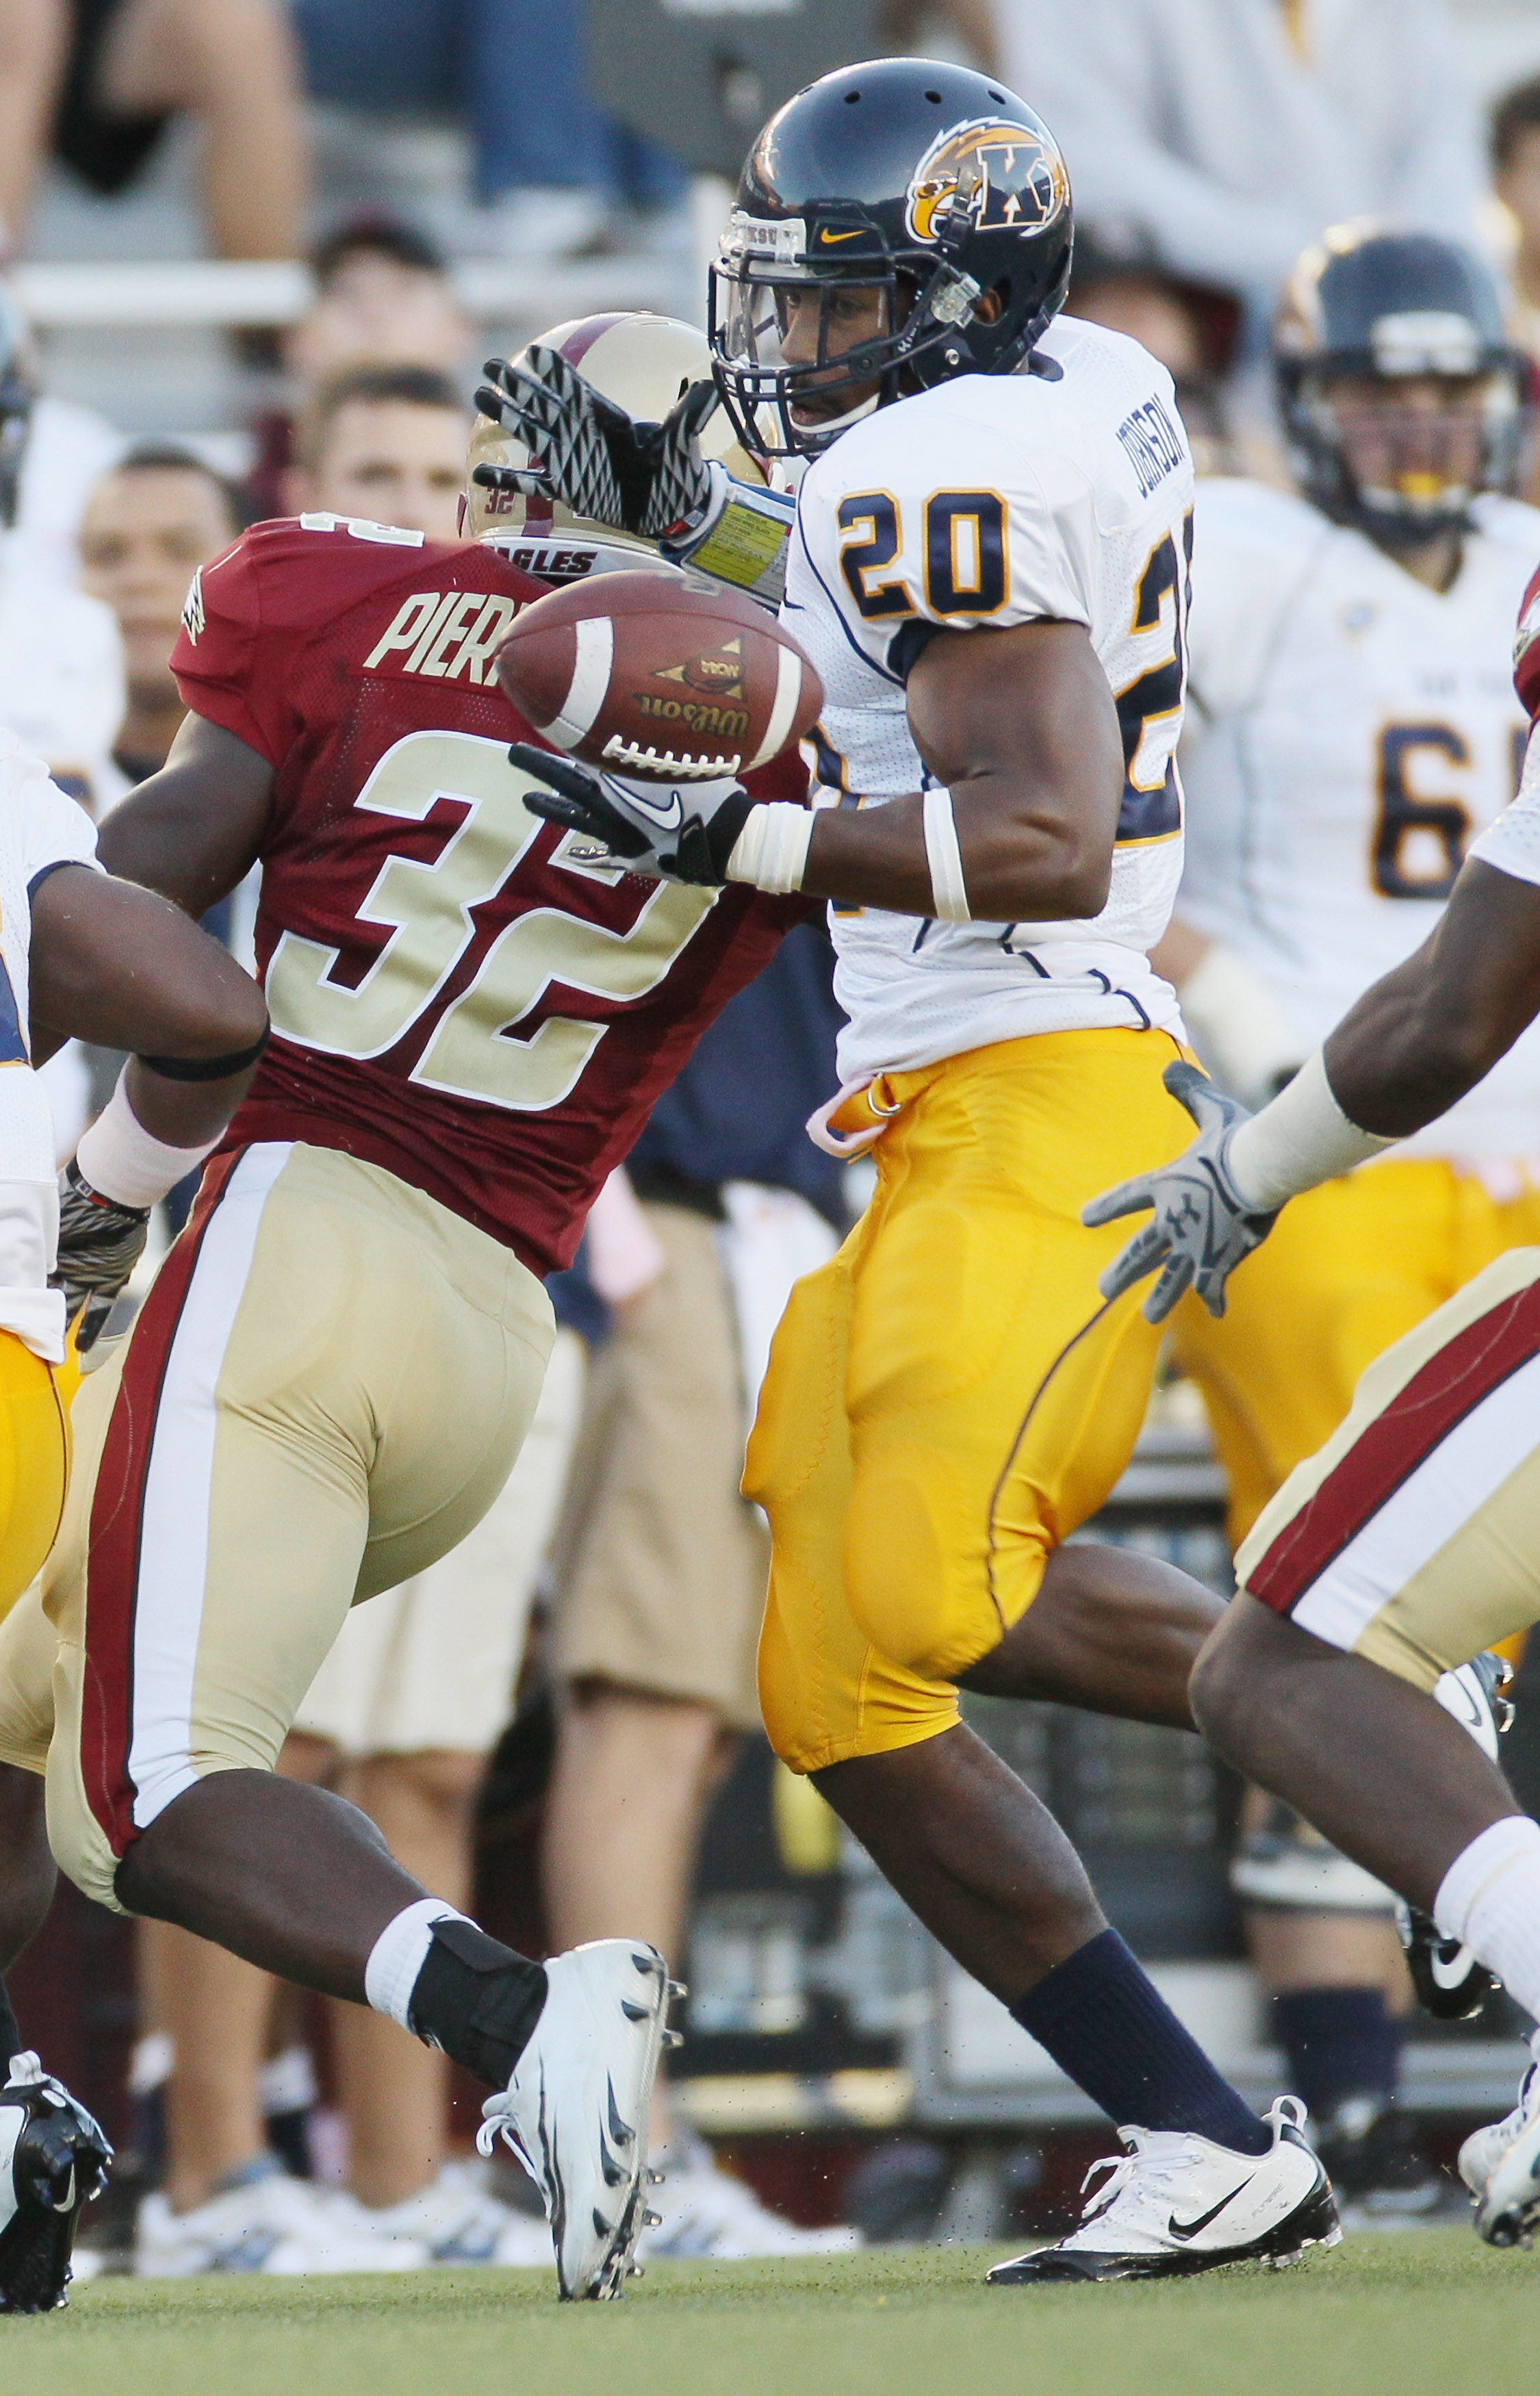 CHESTNUT HILL, MA - SEPTEMBER 11:  Will Johnson #20 of the Kent State Golden Flashes cannot hang on to teammate Leneric Muldrow's fumble as Kevin Pierre-Lewis #32 of the Boston College Eagles defends on September 11, 2010 at Alumni Stadium in Chestnut Hil